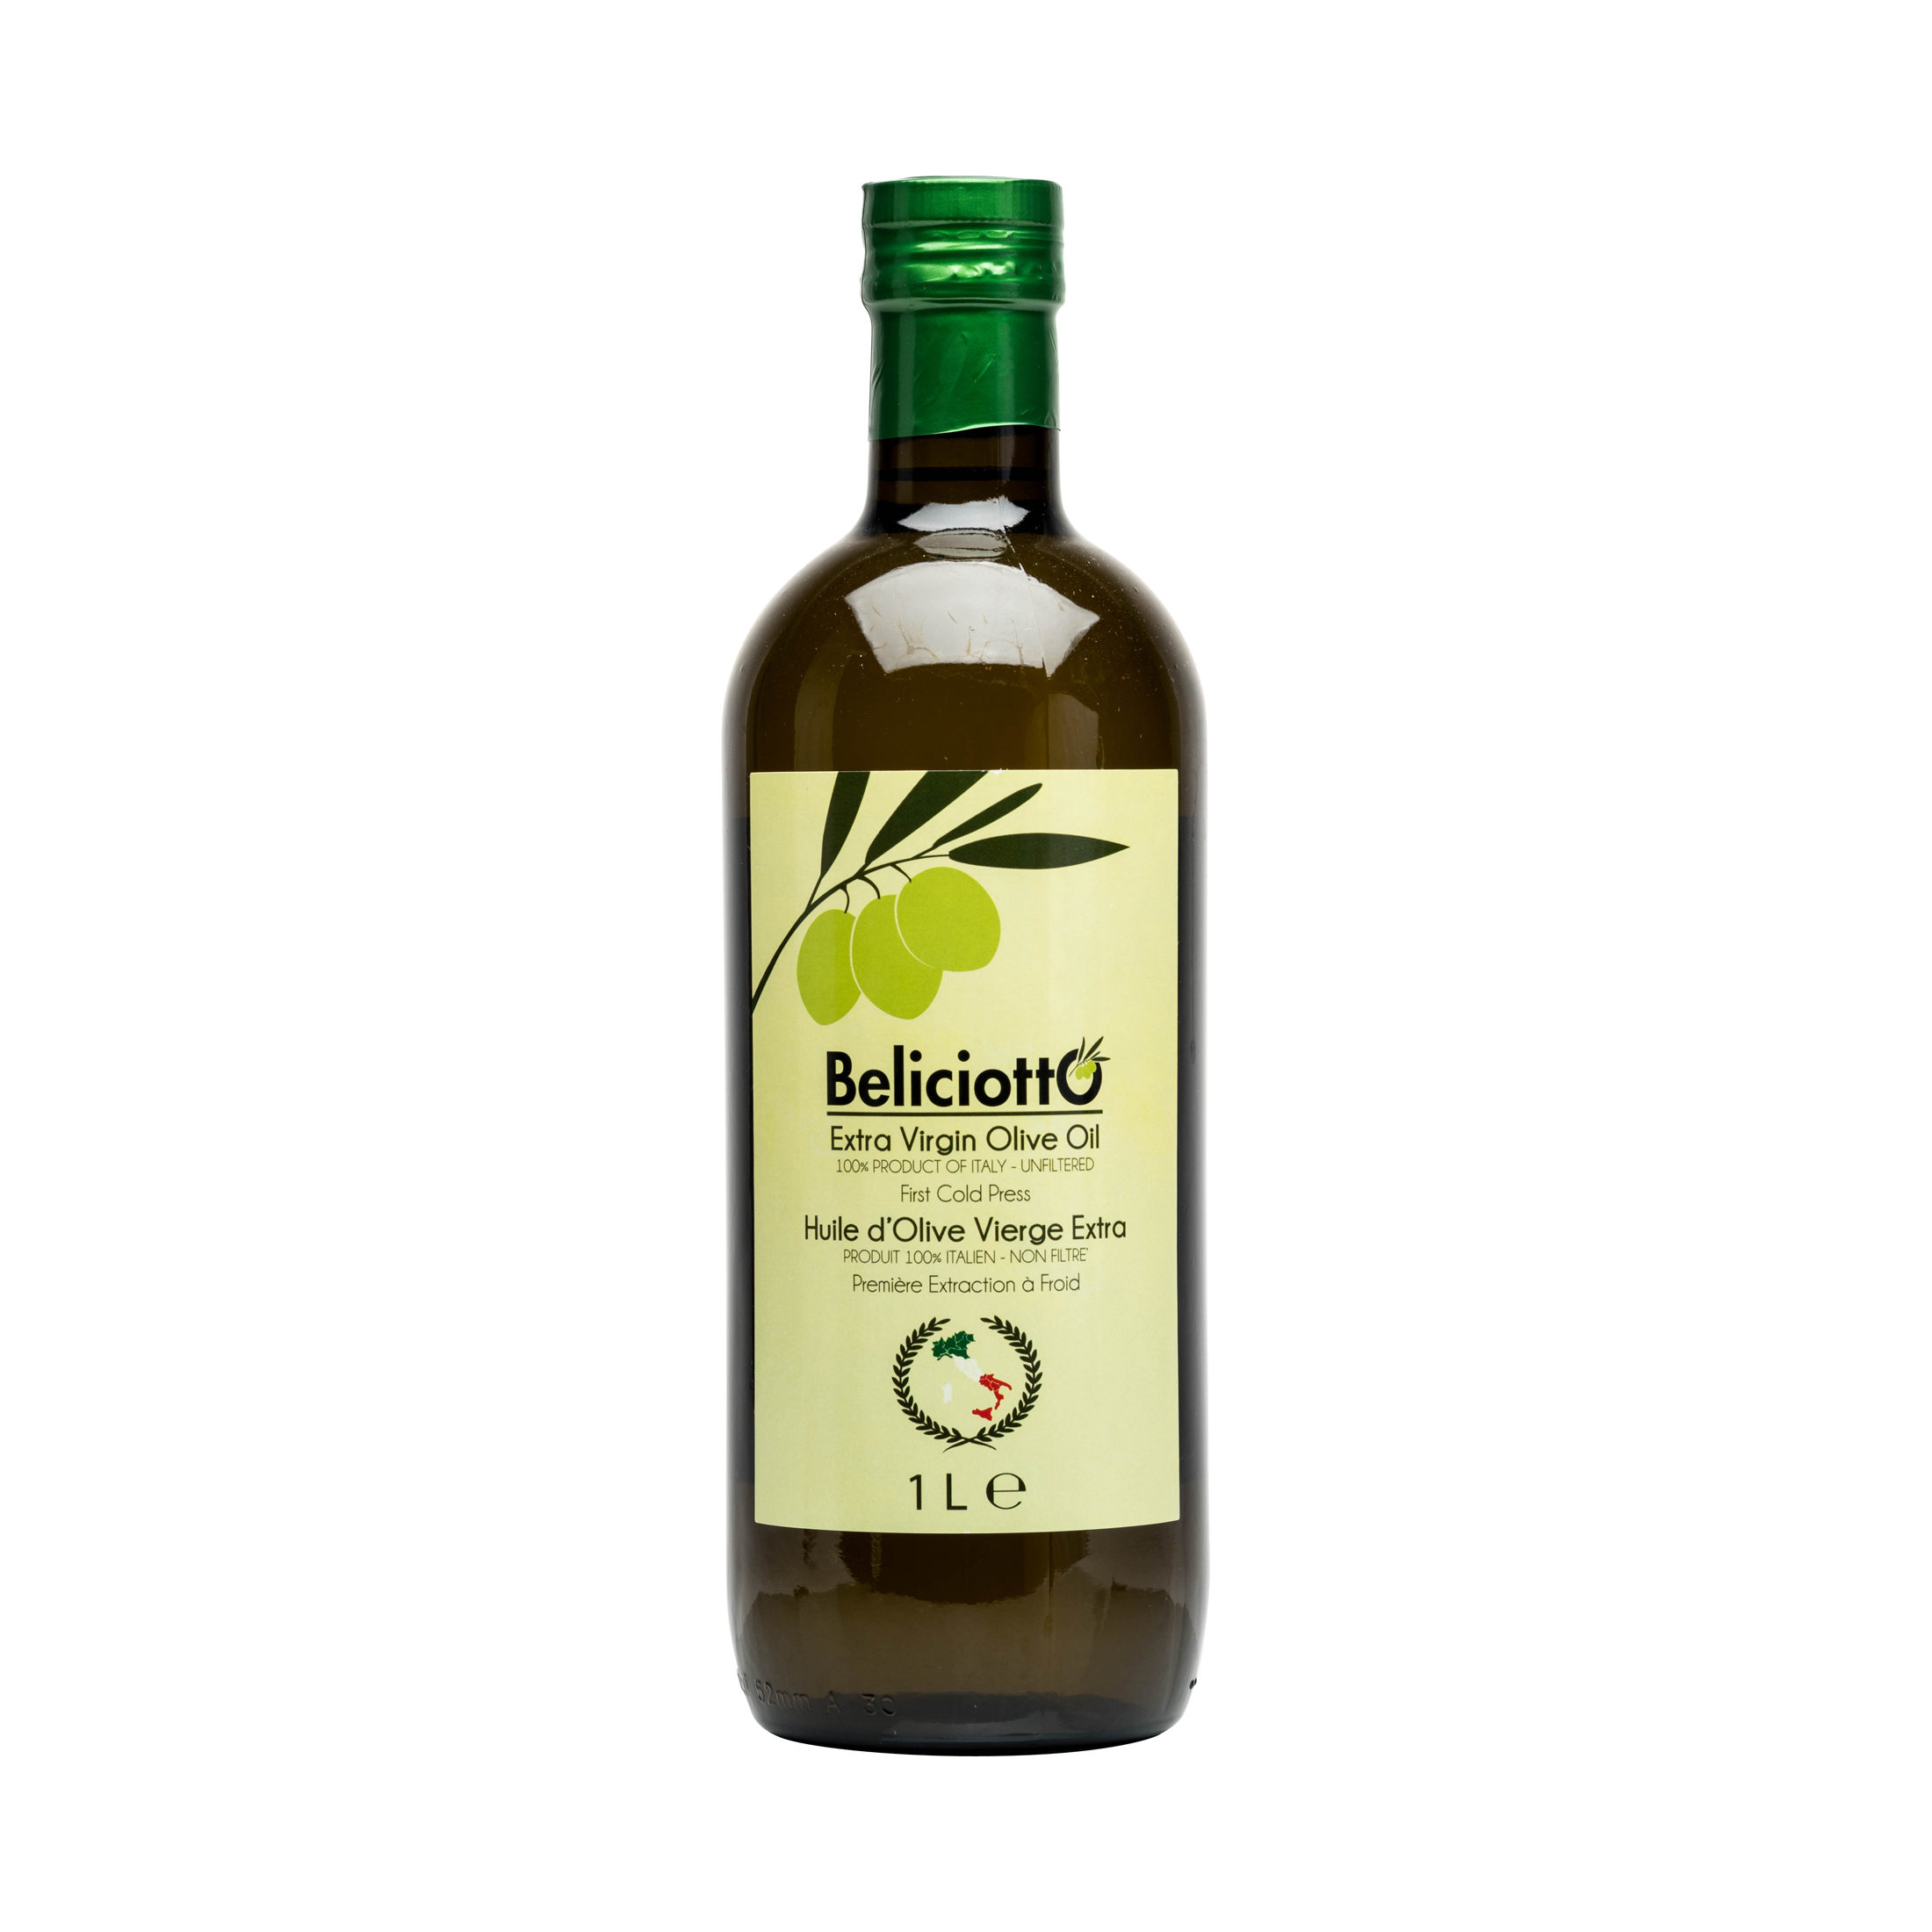 BELICIOTTO EXTRA VIRGIN OLIVE OIL